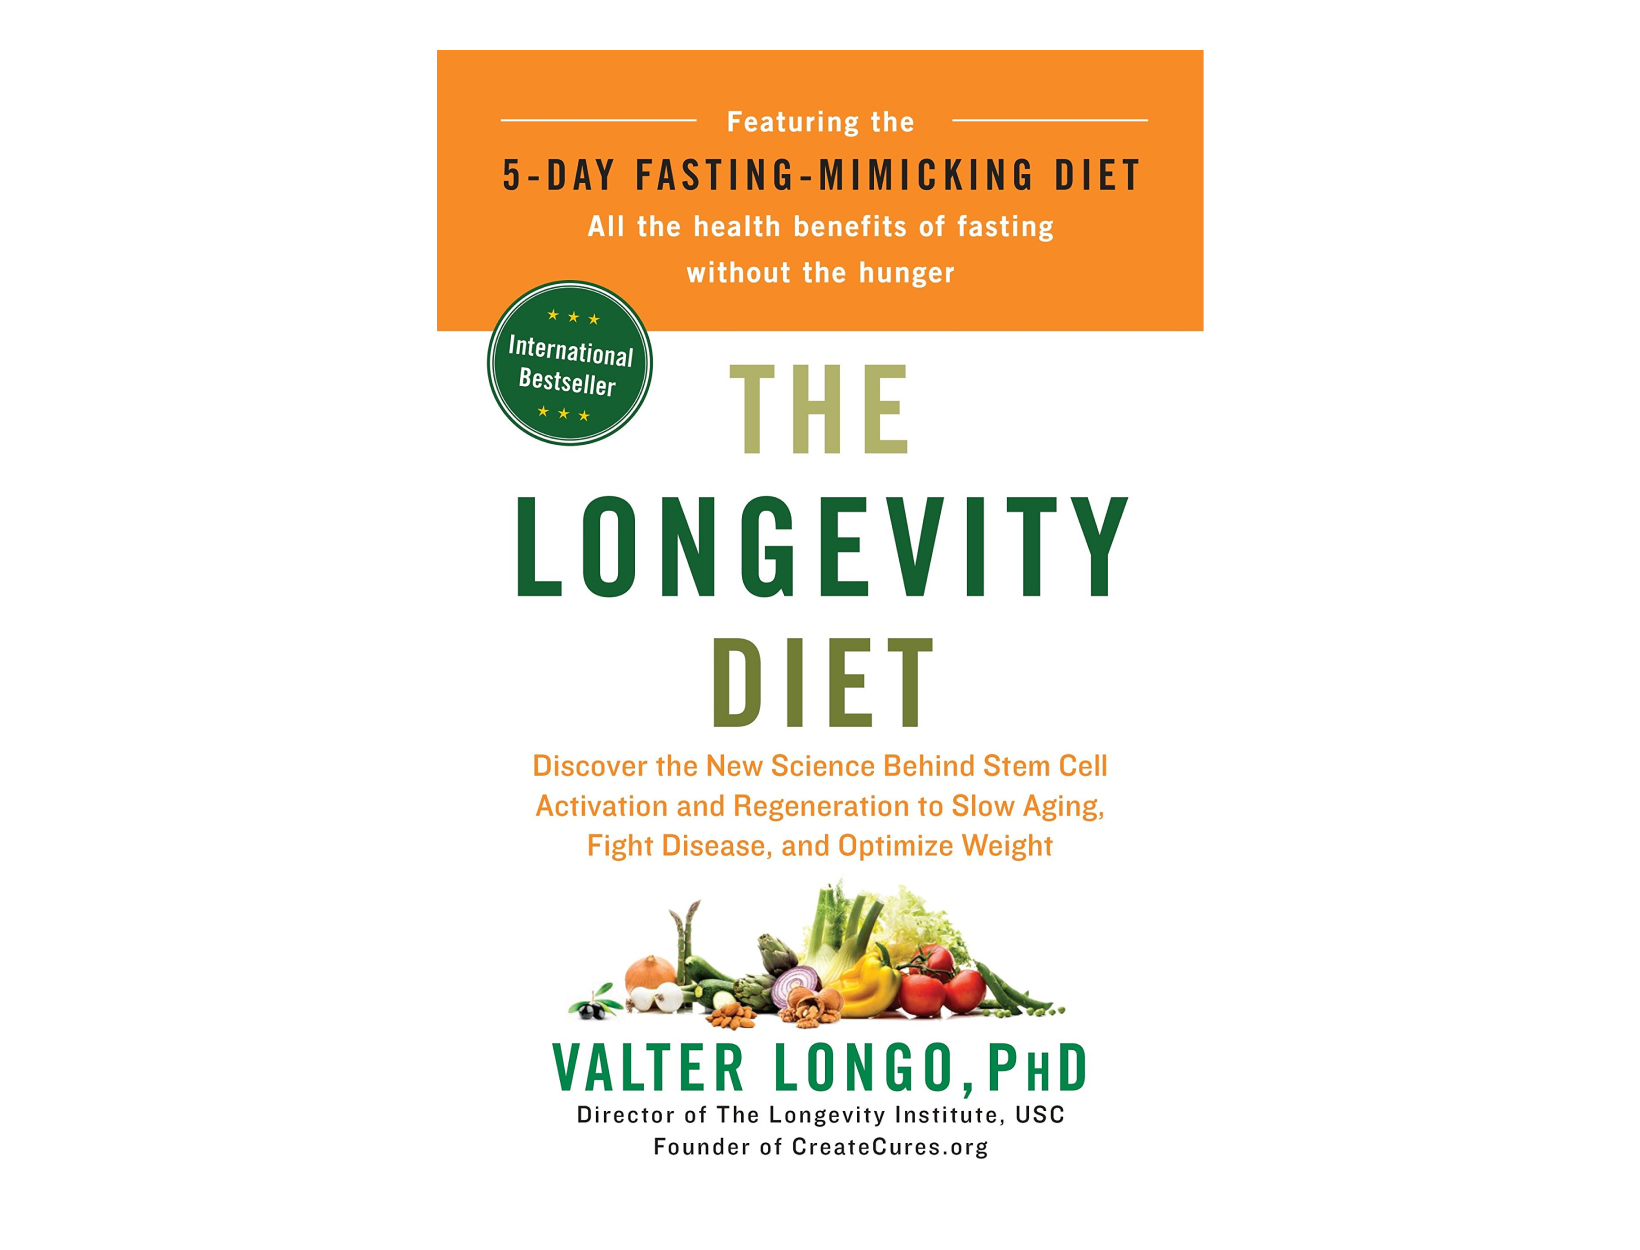 <em>The Longevity Diet</em> by Valter Longo, PhD